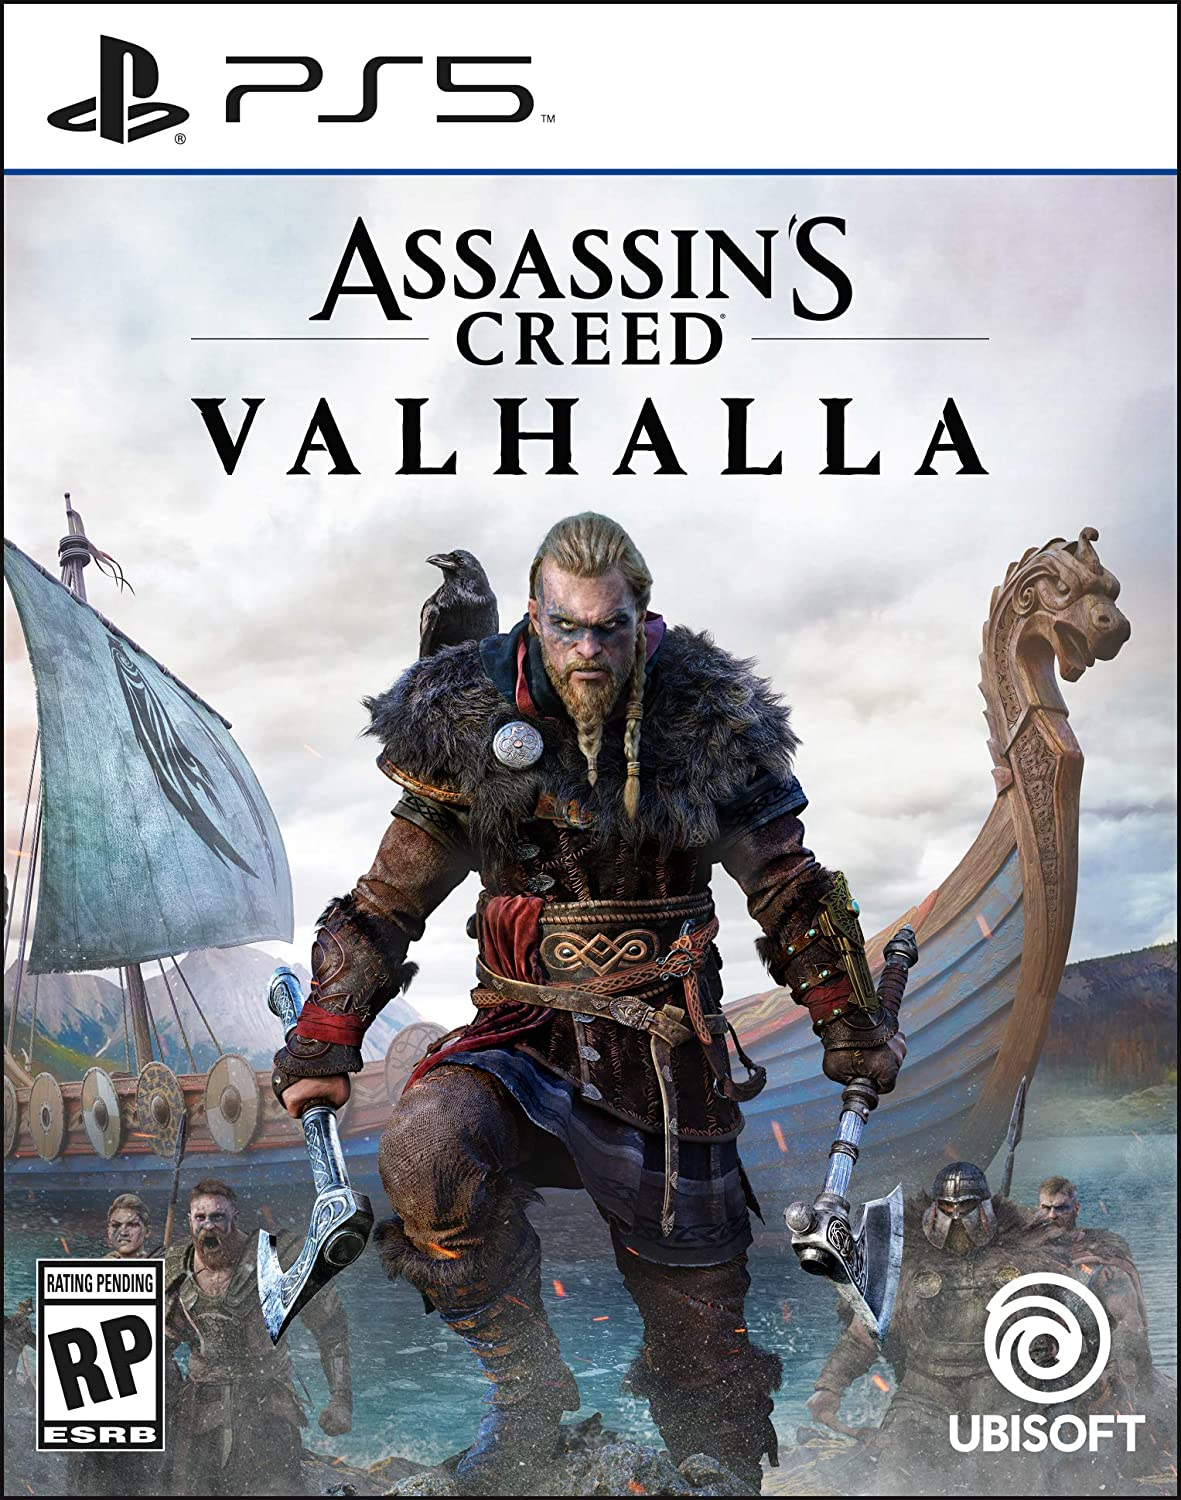 Ps5 Box Arts Emerge For Assassin S Cred Valhalla Watch Dogs Legion And Far Cry 6